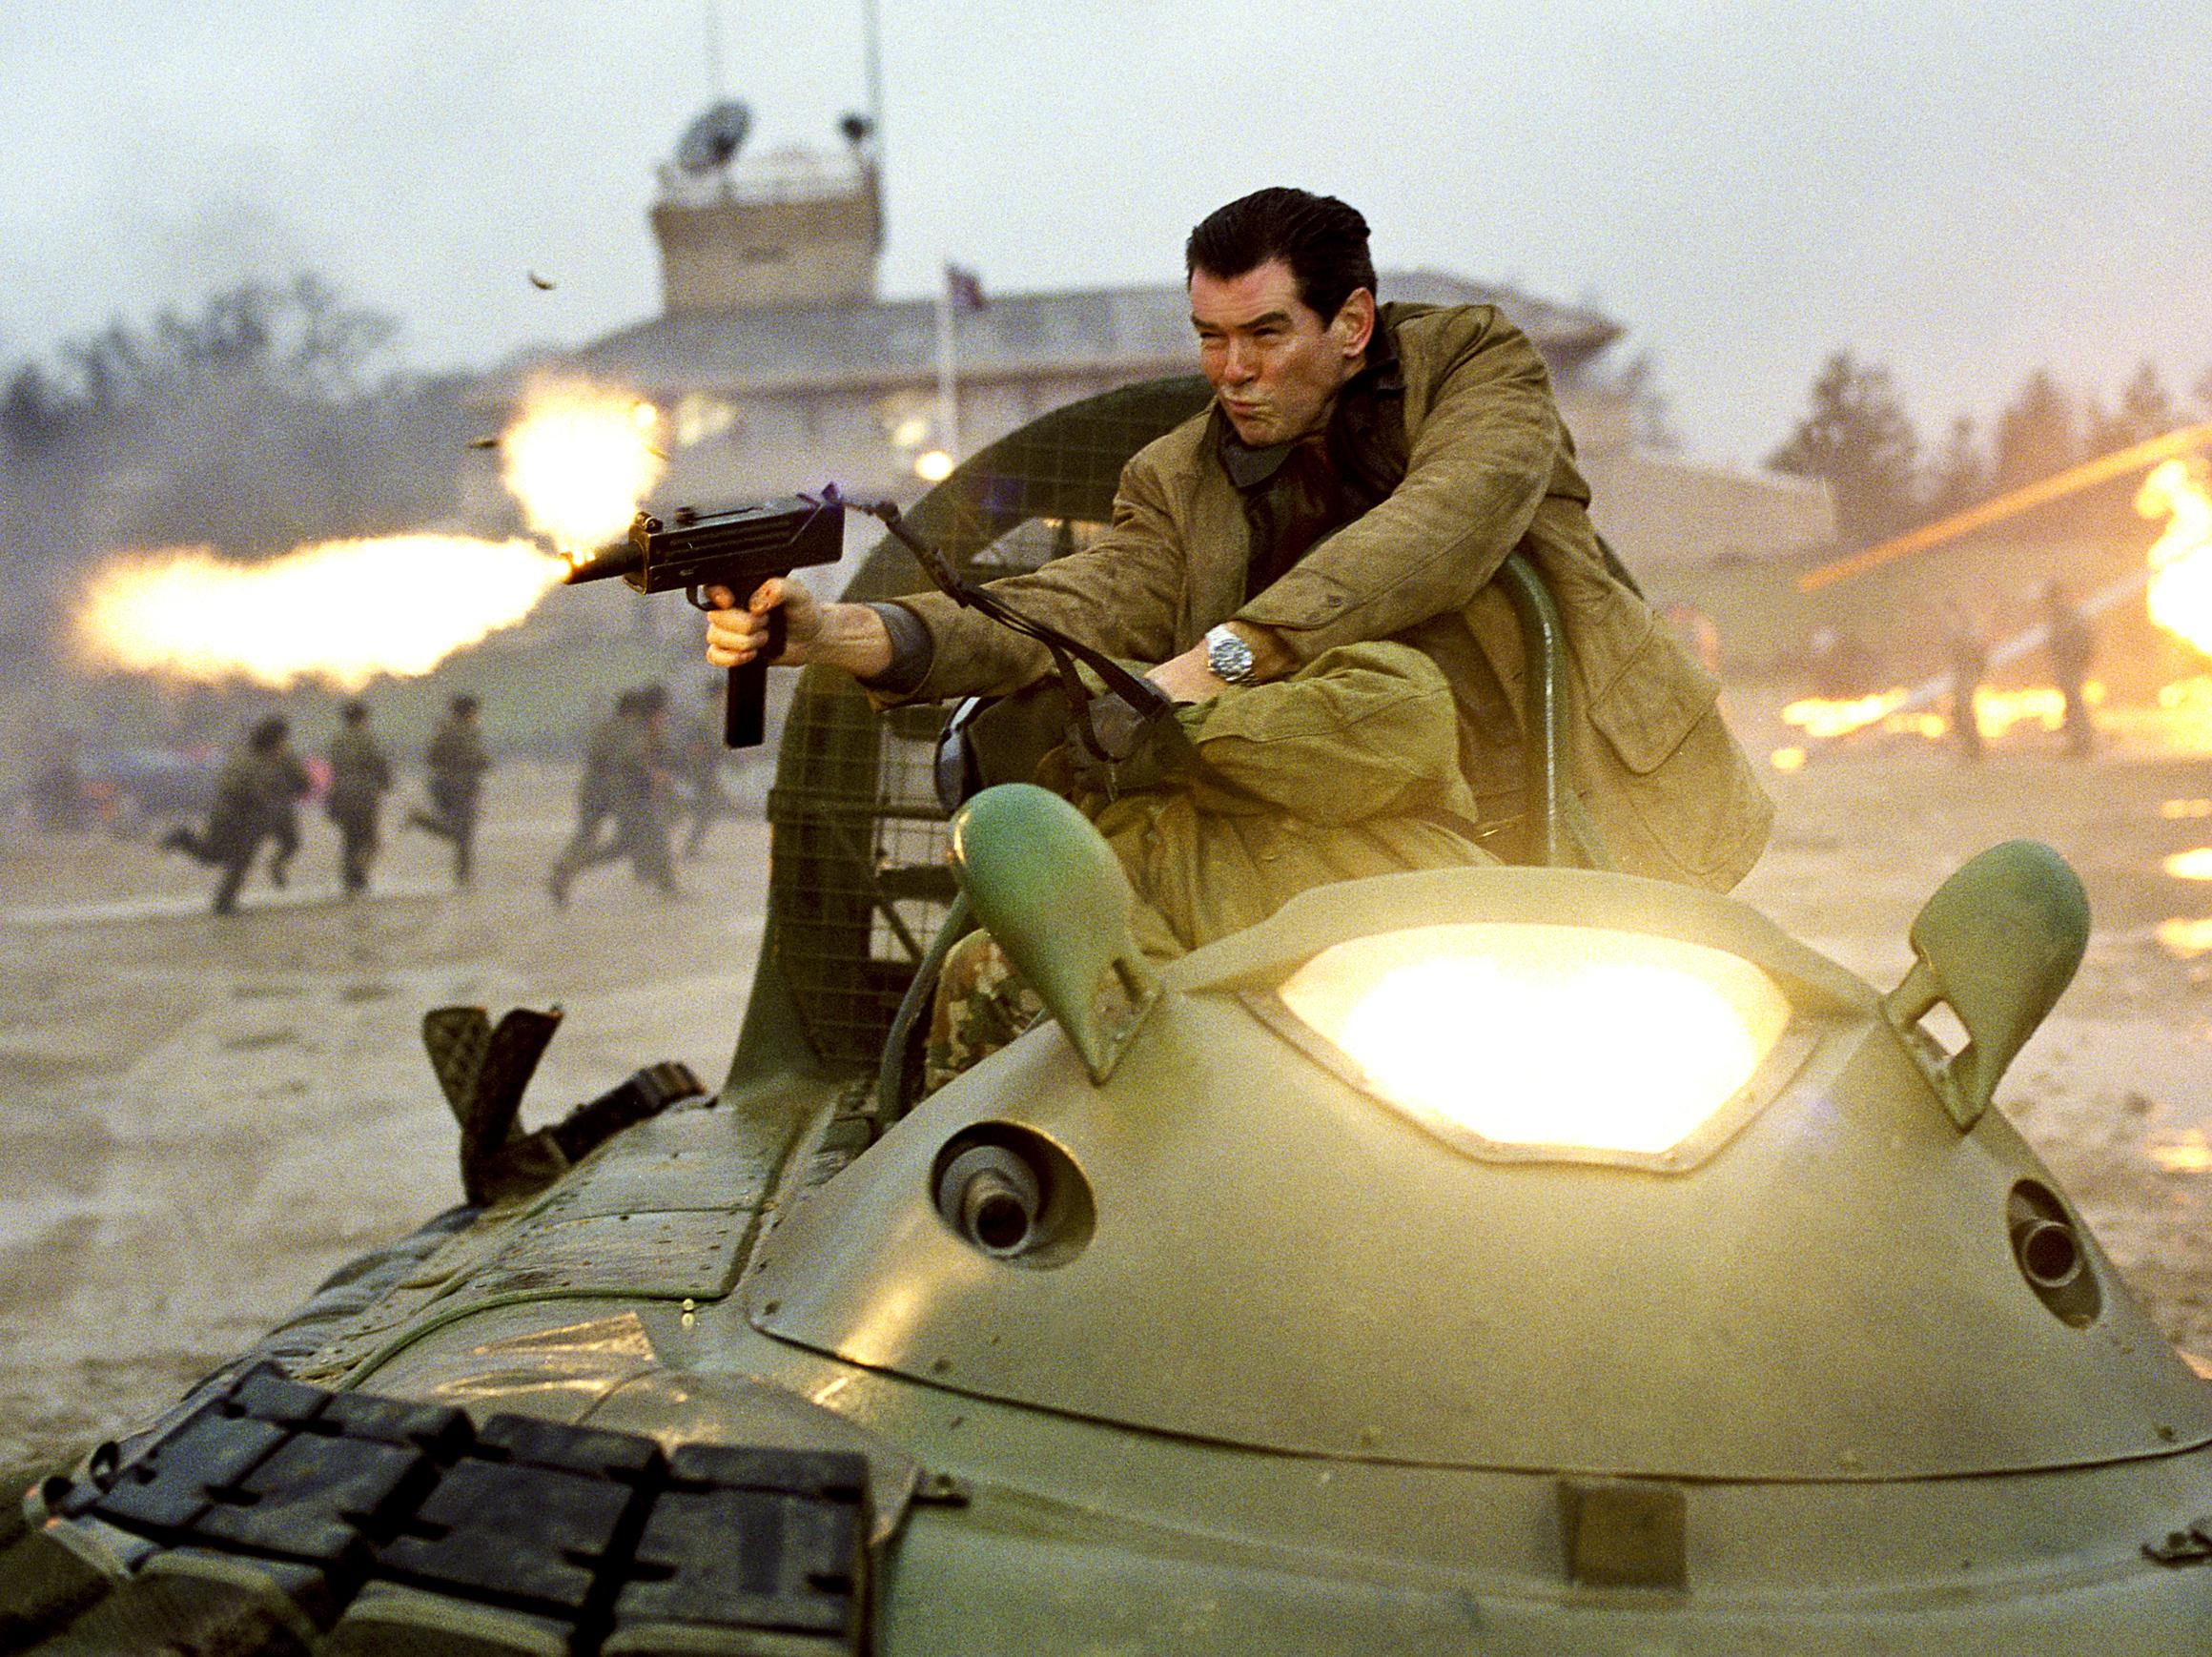 Pierre Brosnan in Die Another Day 2002 with the original Hovercraft.